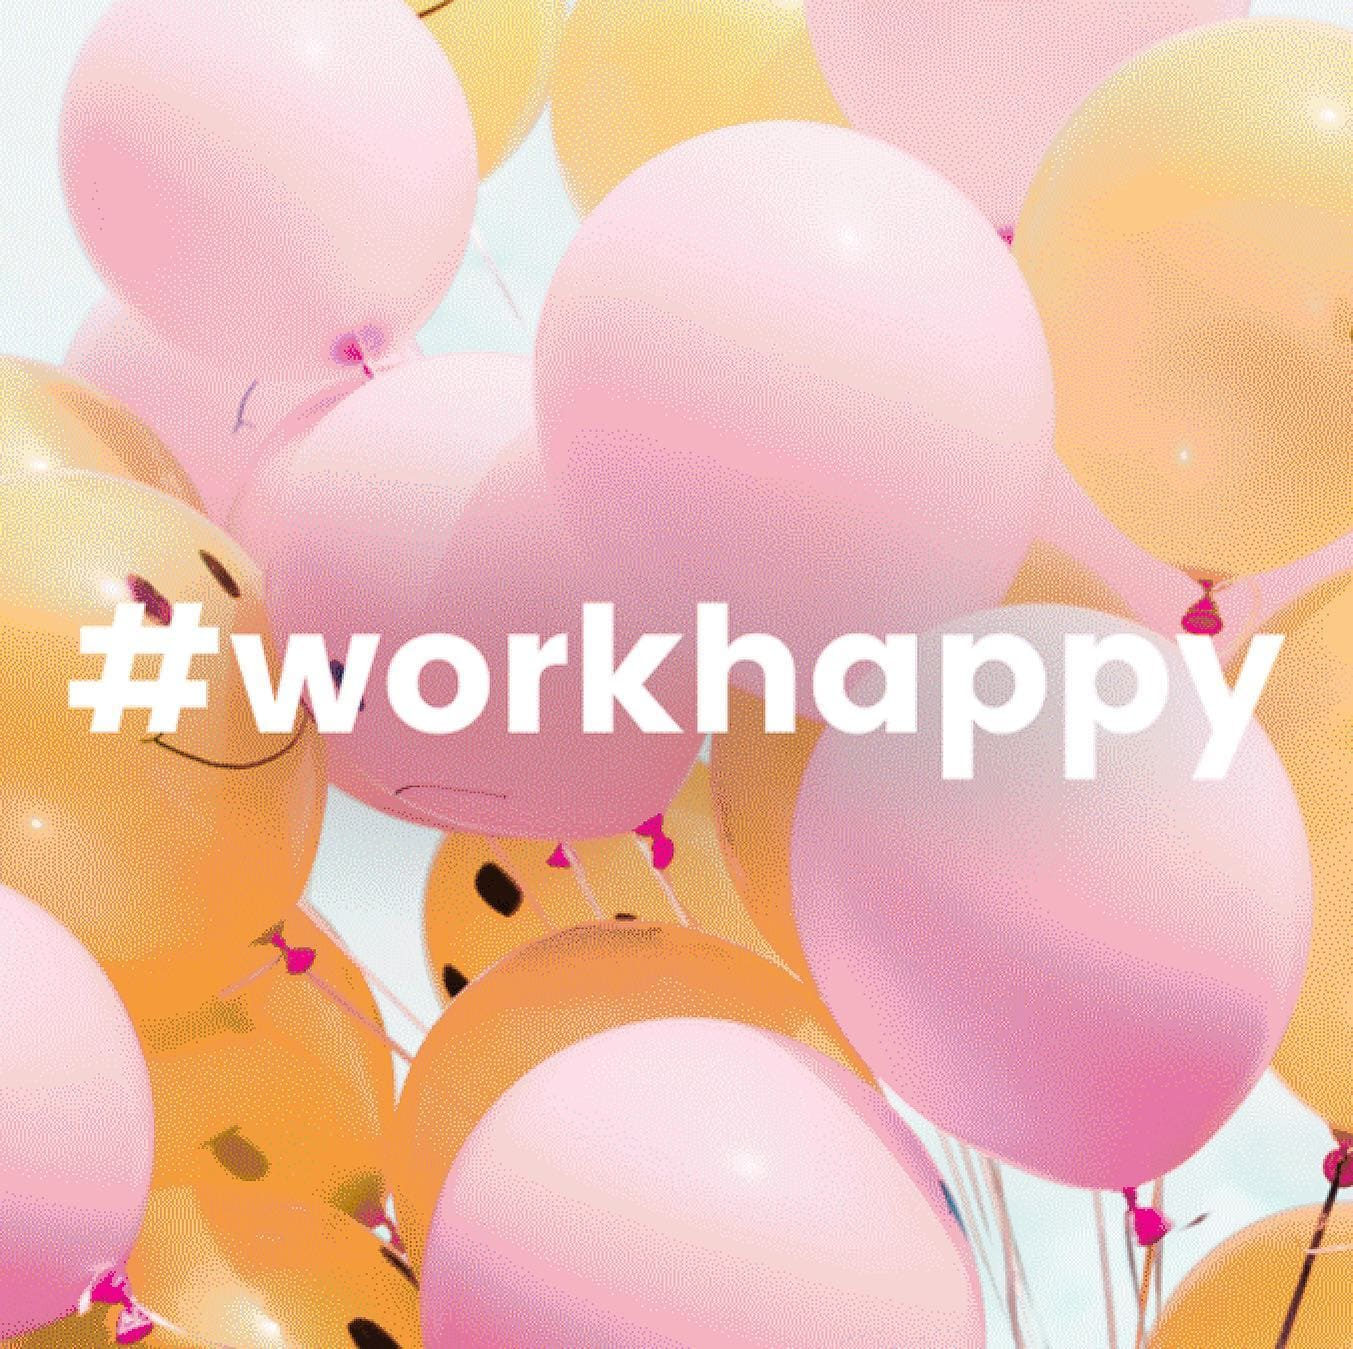 Happy Thursday!!! We hope you all have a happy day #workhappy